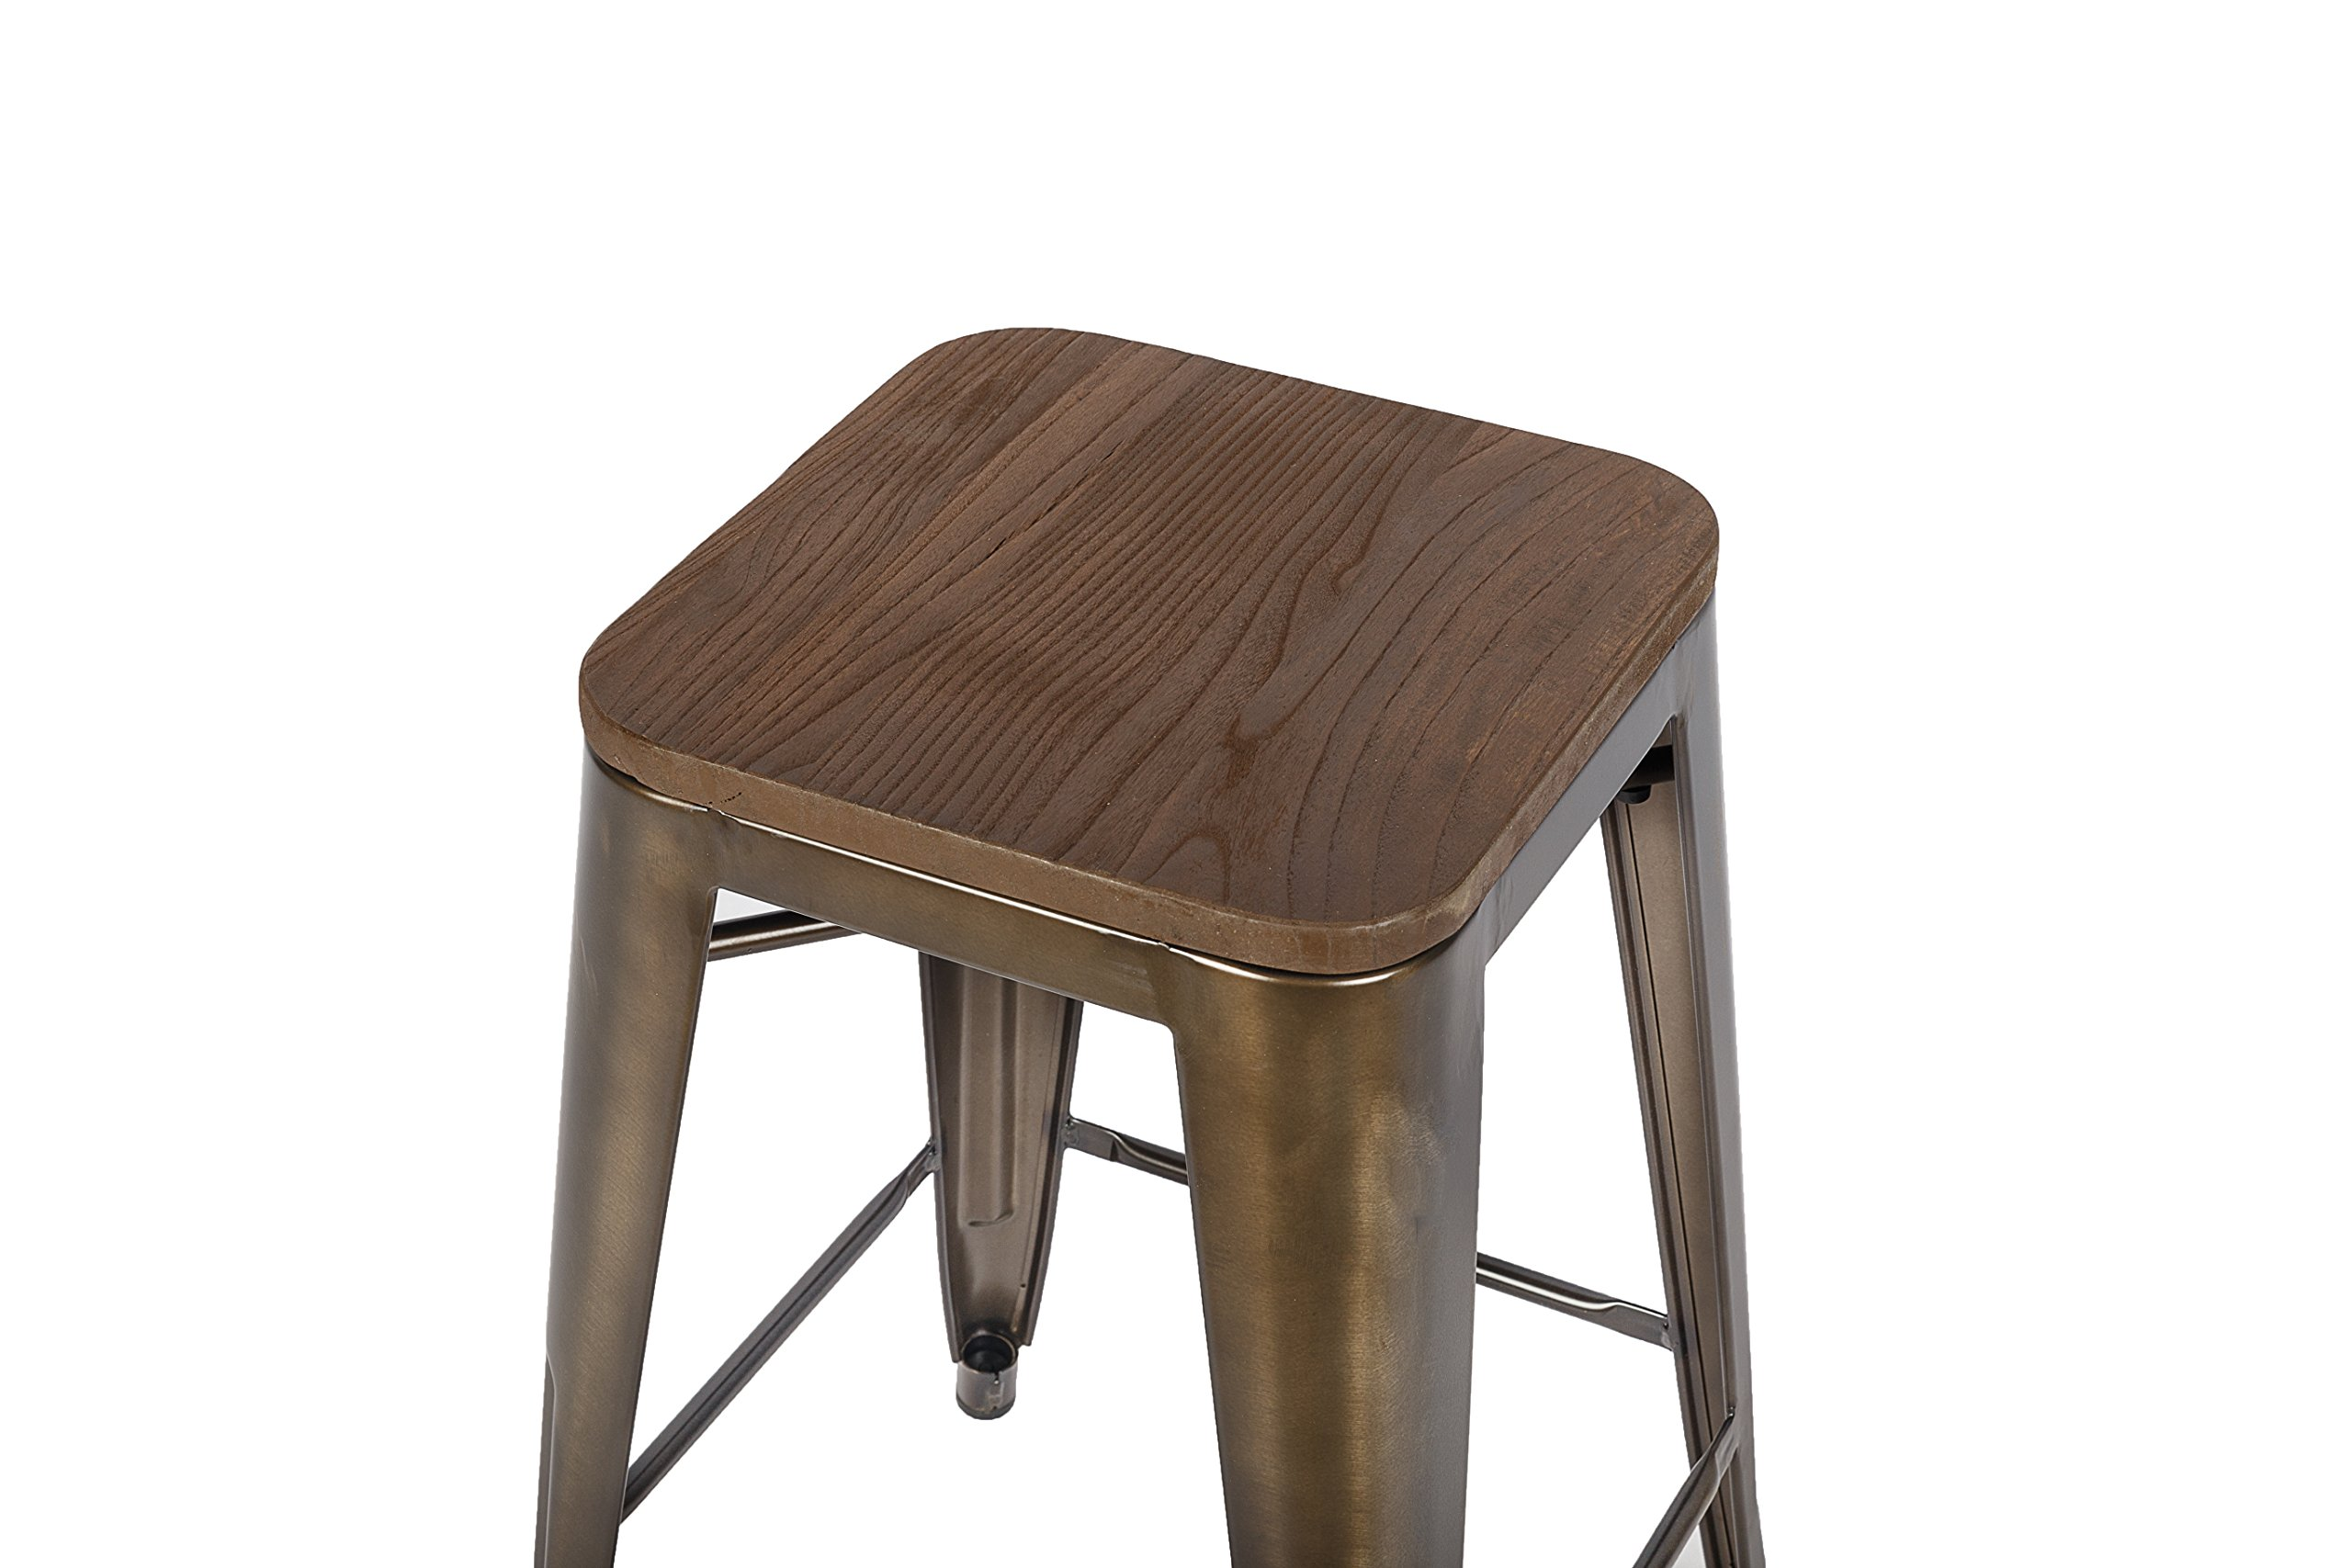 LCH 24 Inch Patio Metal Industrial Bar Stools, Set of 4 Indoor/Outdoor Counter Stackable Barstool with Wood Seat, 500 LB Limit, Antique Copper by LCH (Image #7)